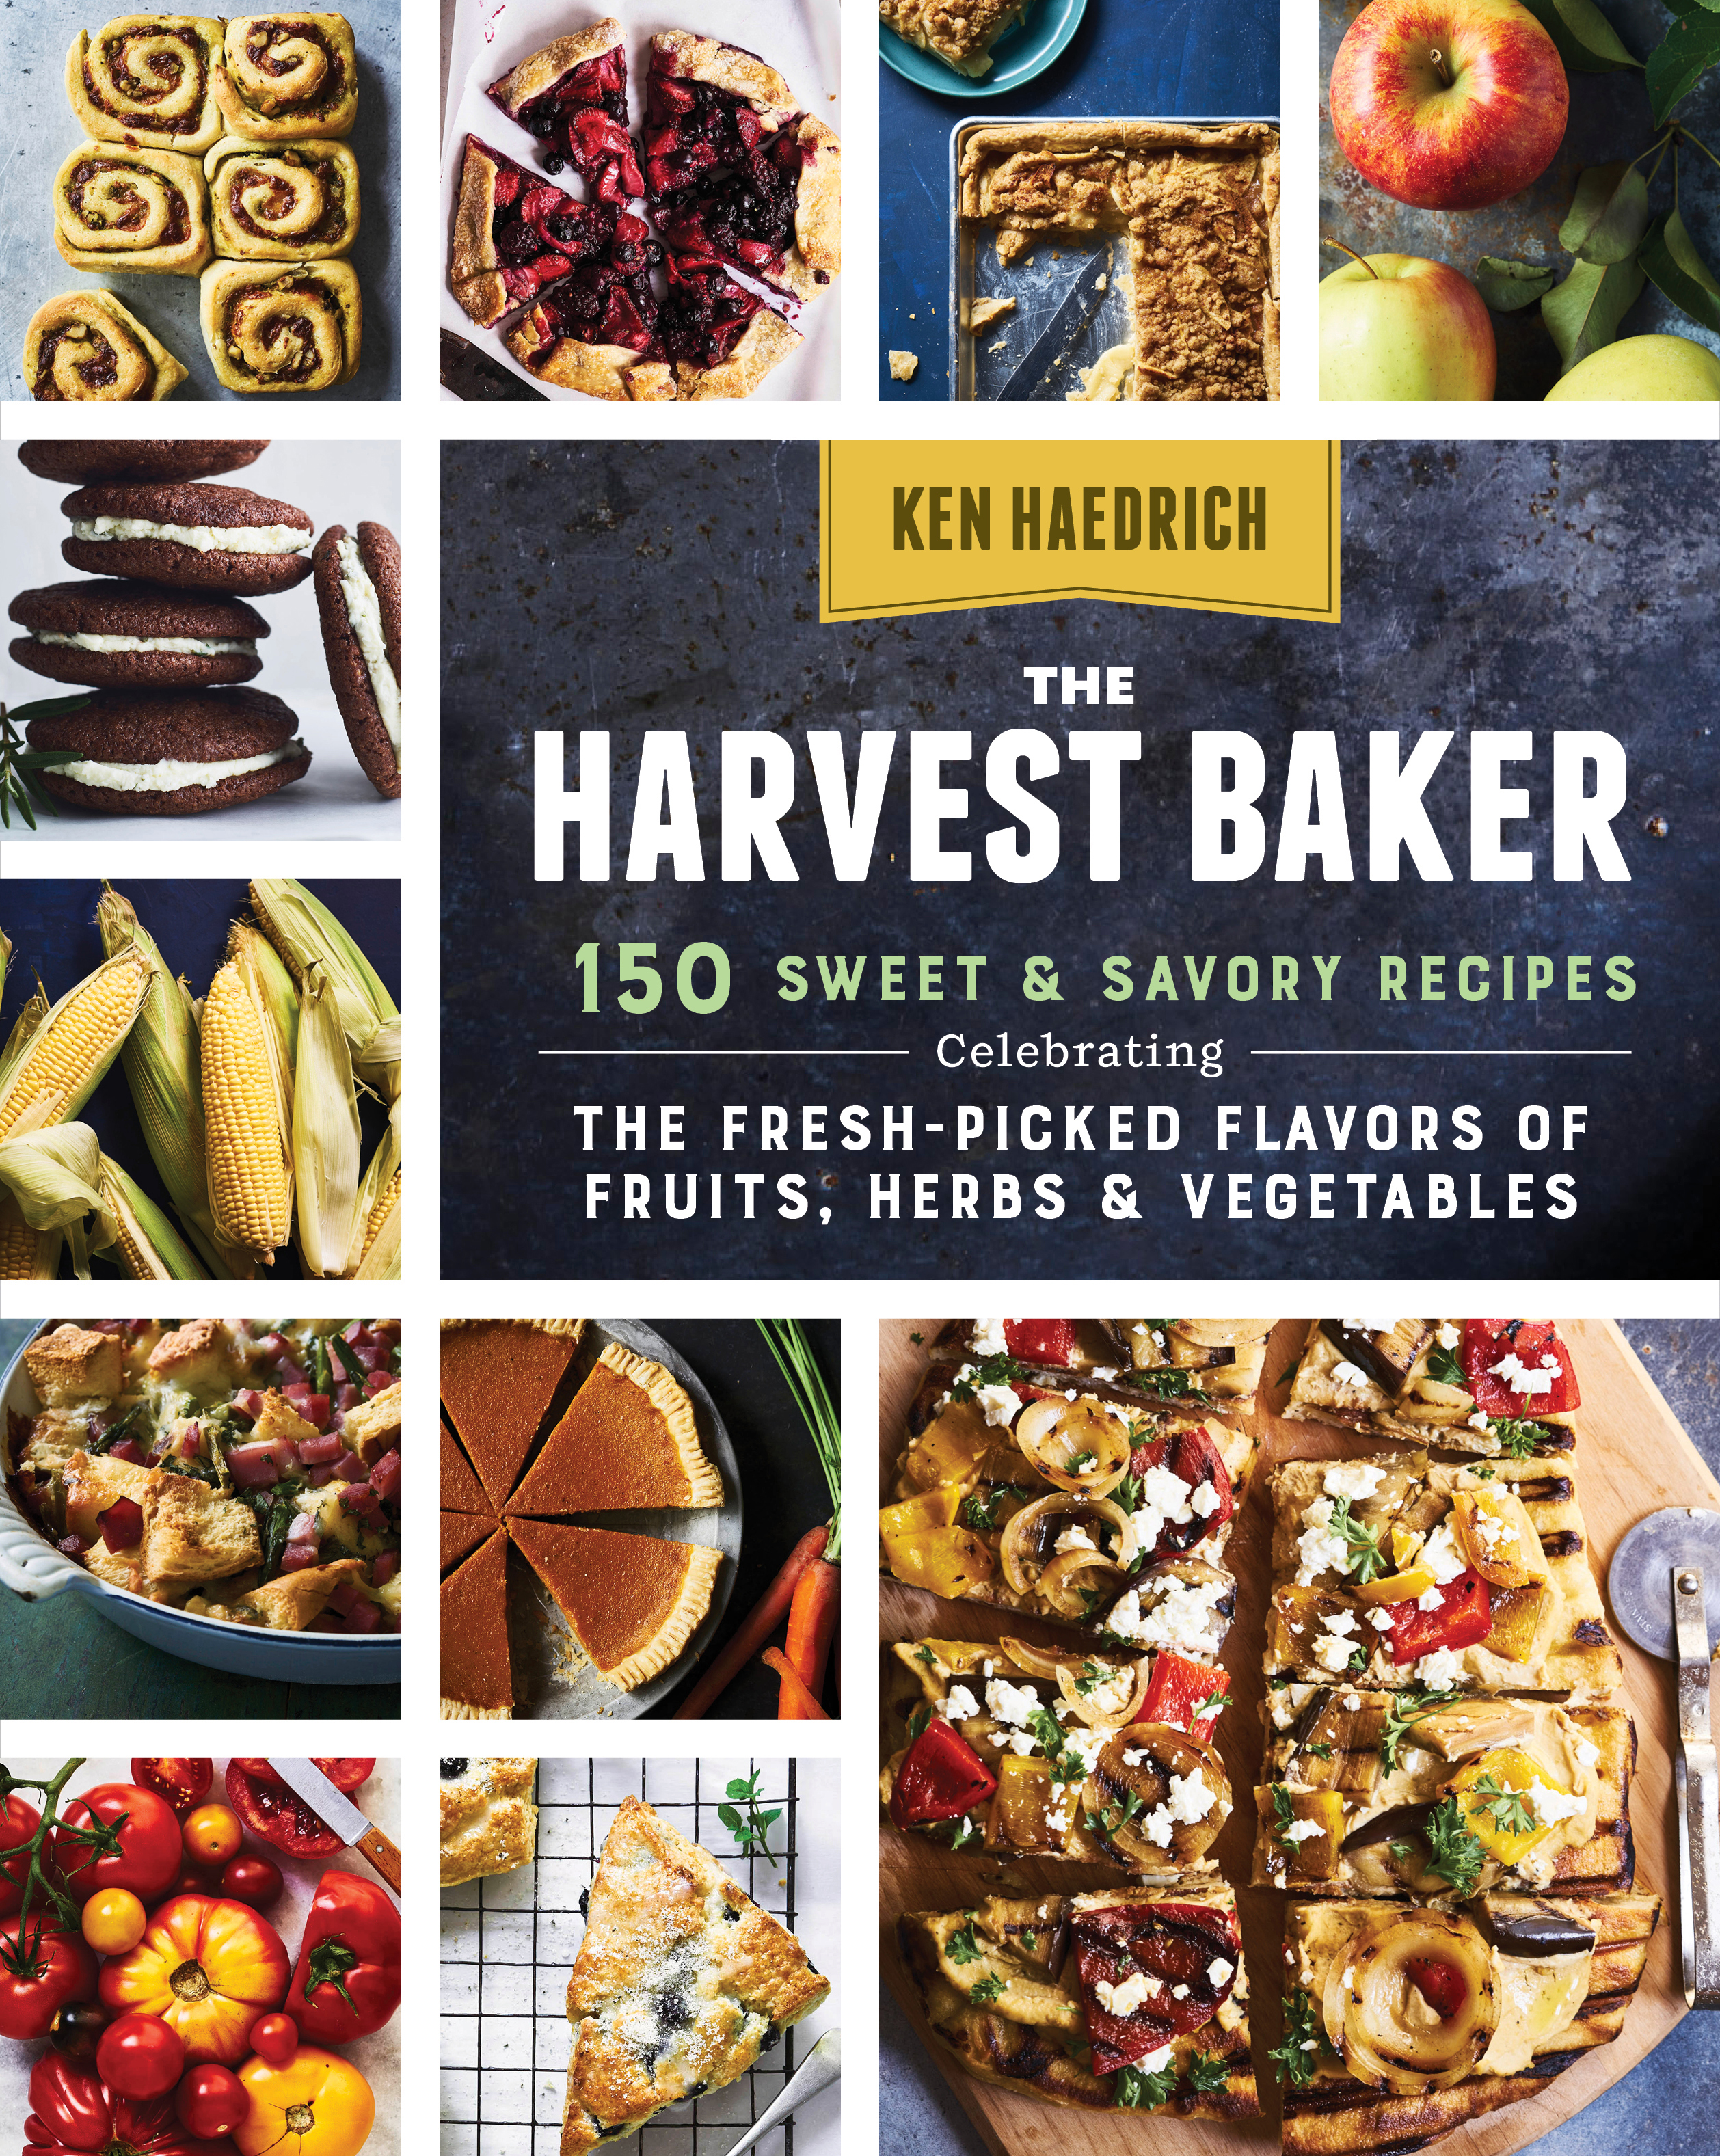 The Harvest Baker 150 Sweet & Savory Recipes Celebrating the Fresh-Picked Flavors of Fruits, Herbs & Vegetables - Ken Haedrich